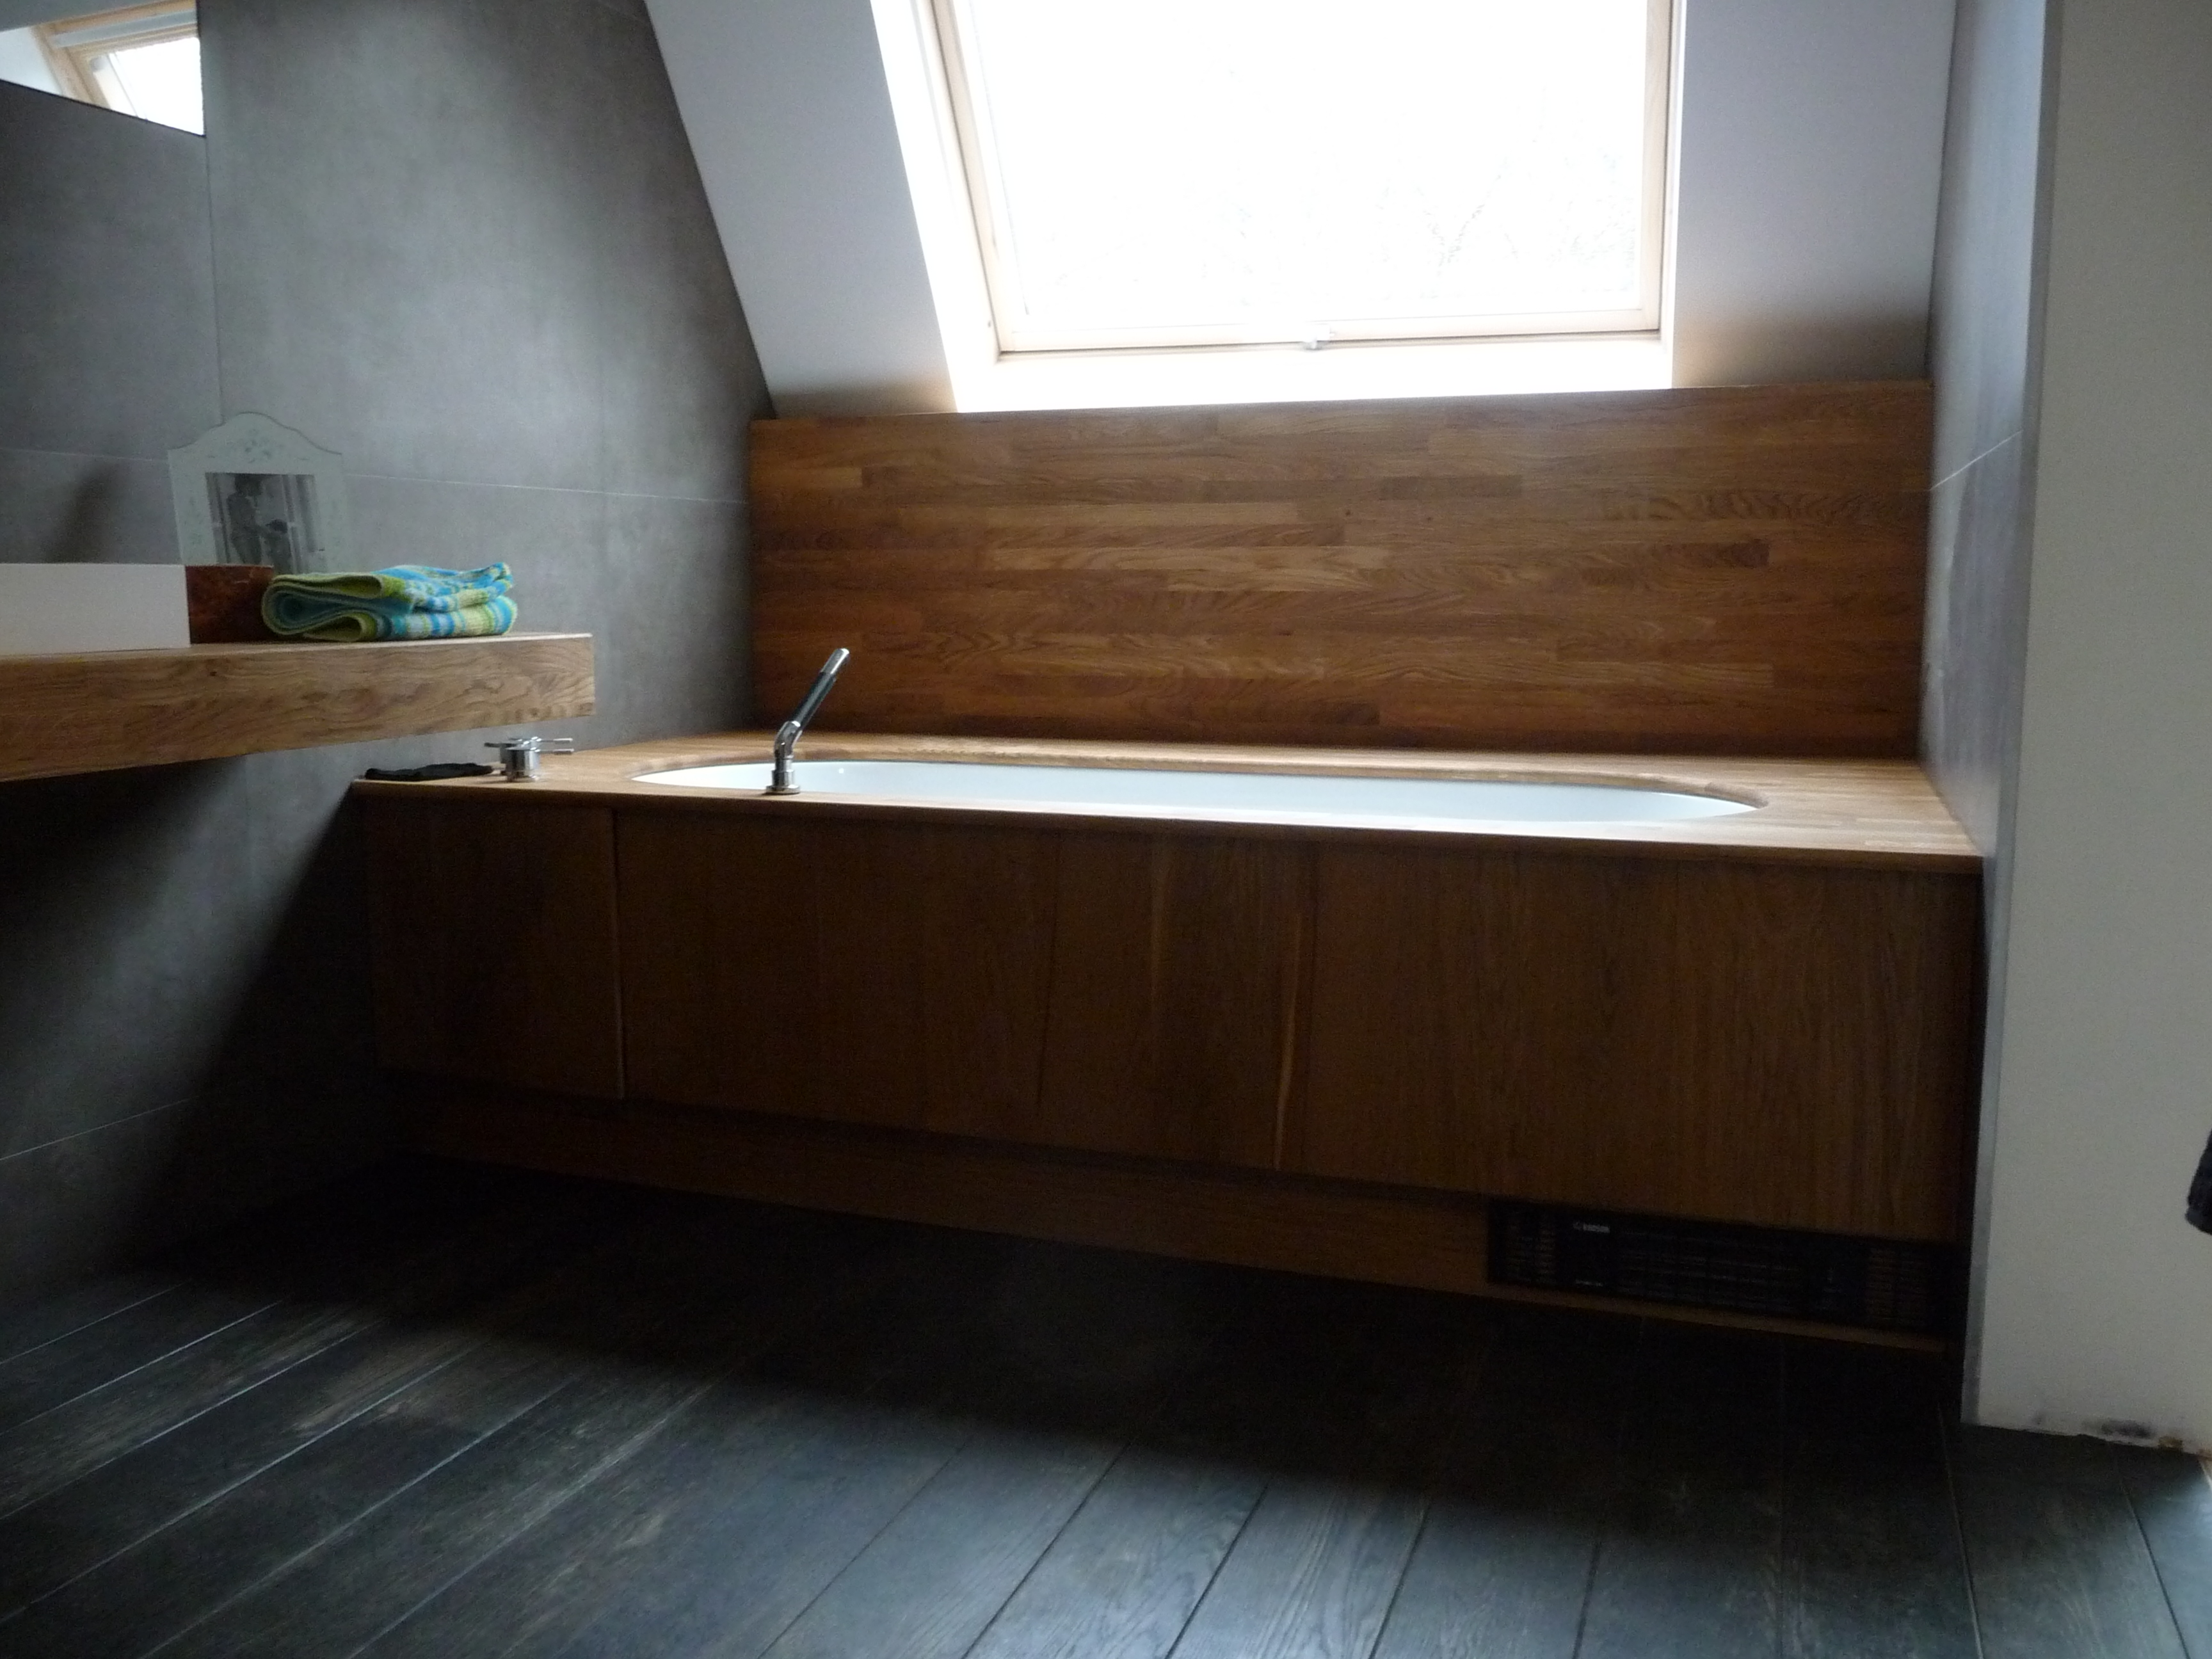 Oa bathtub casing